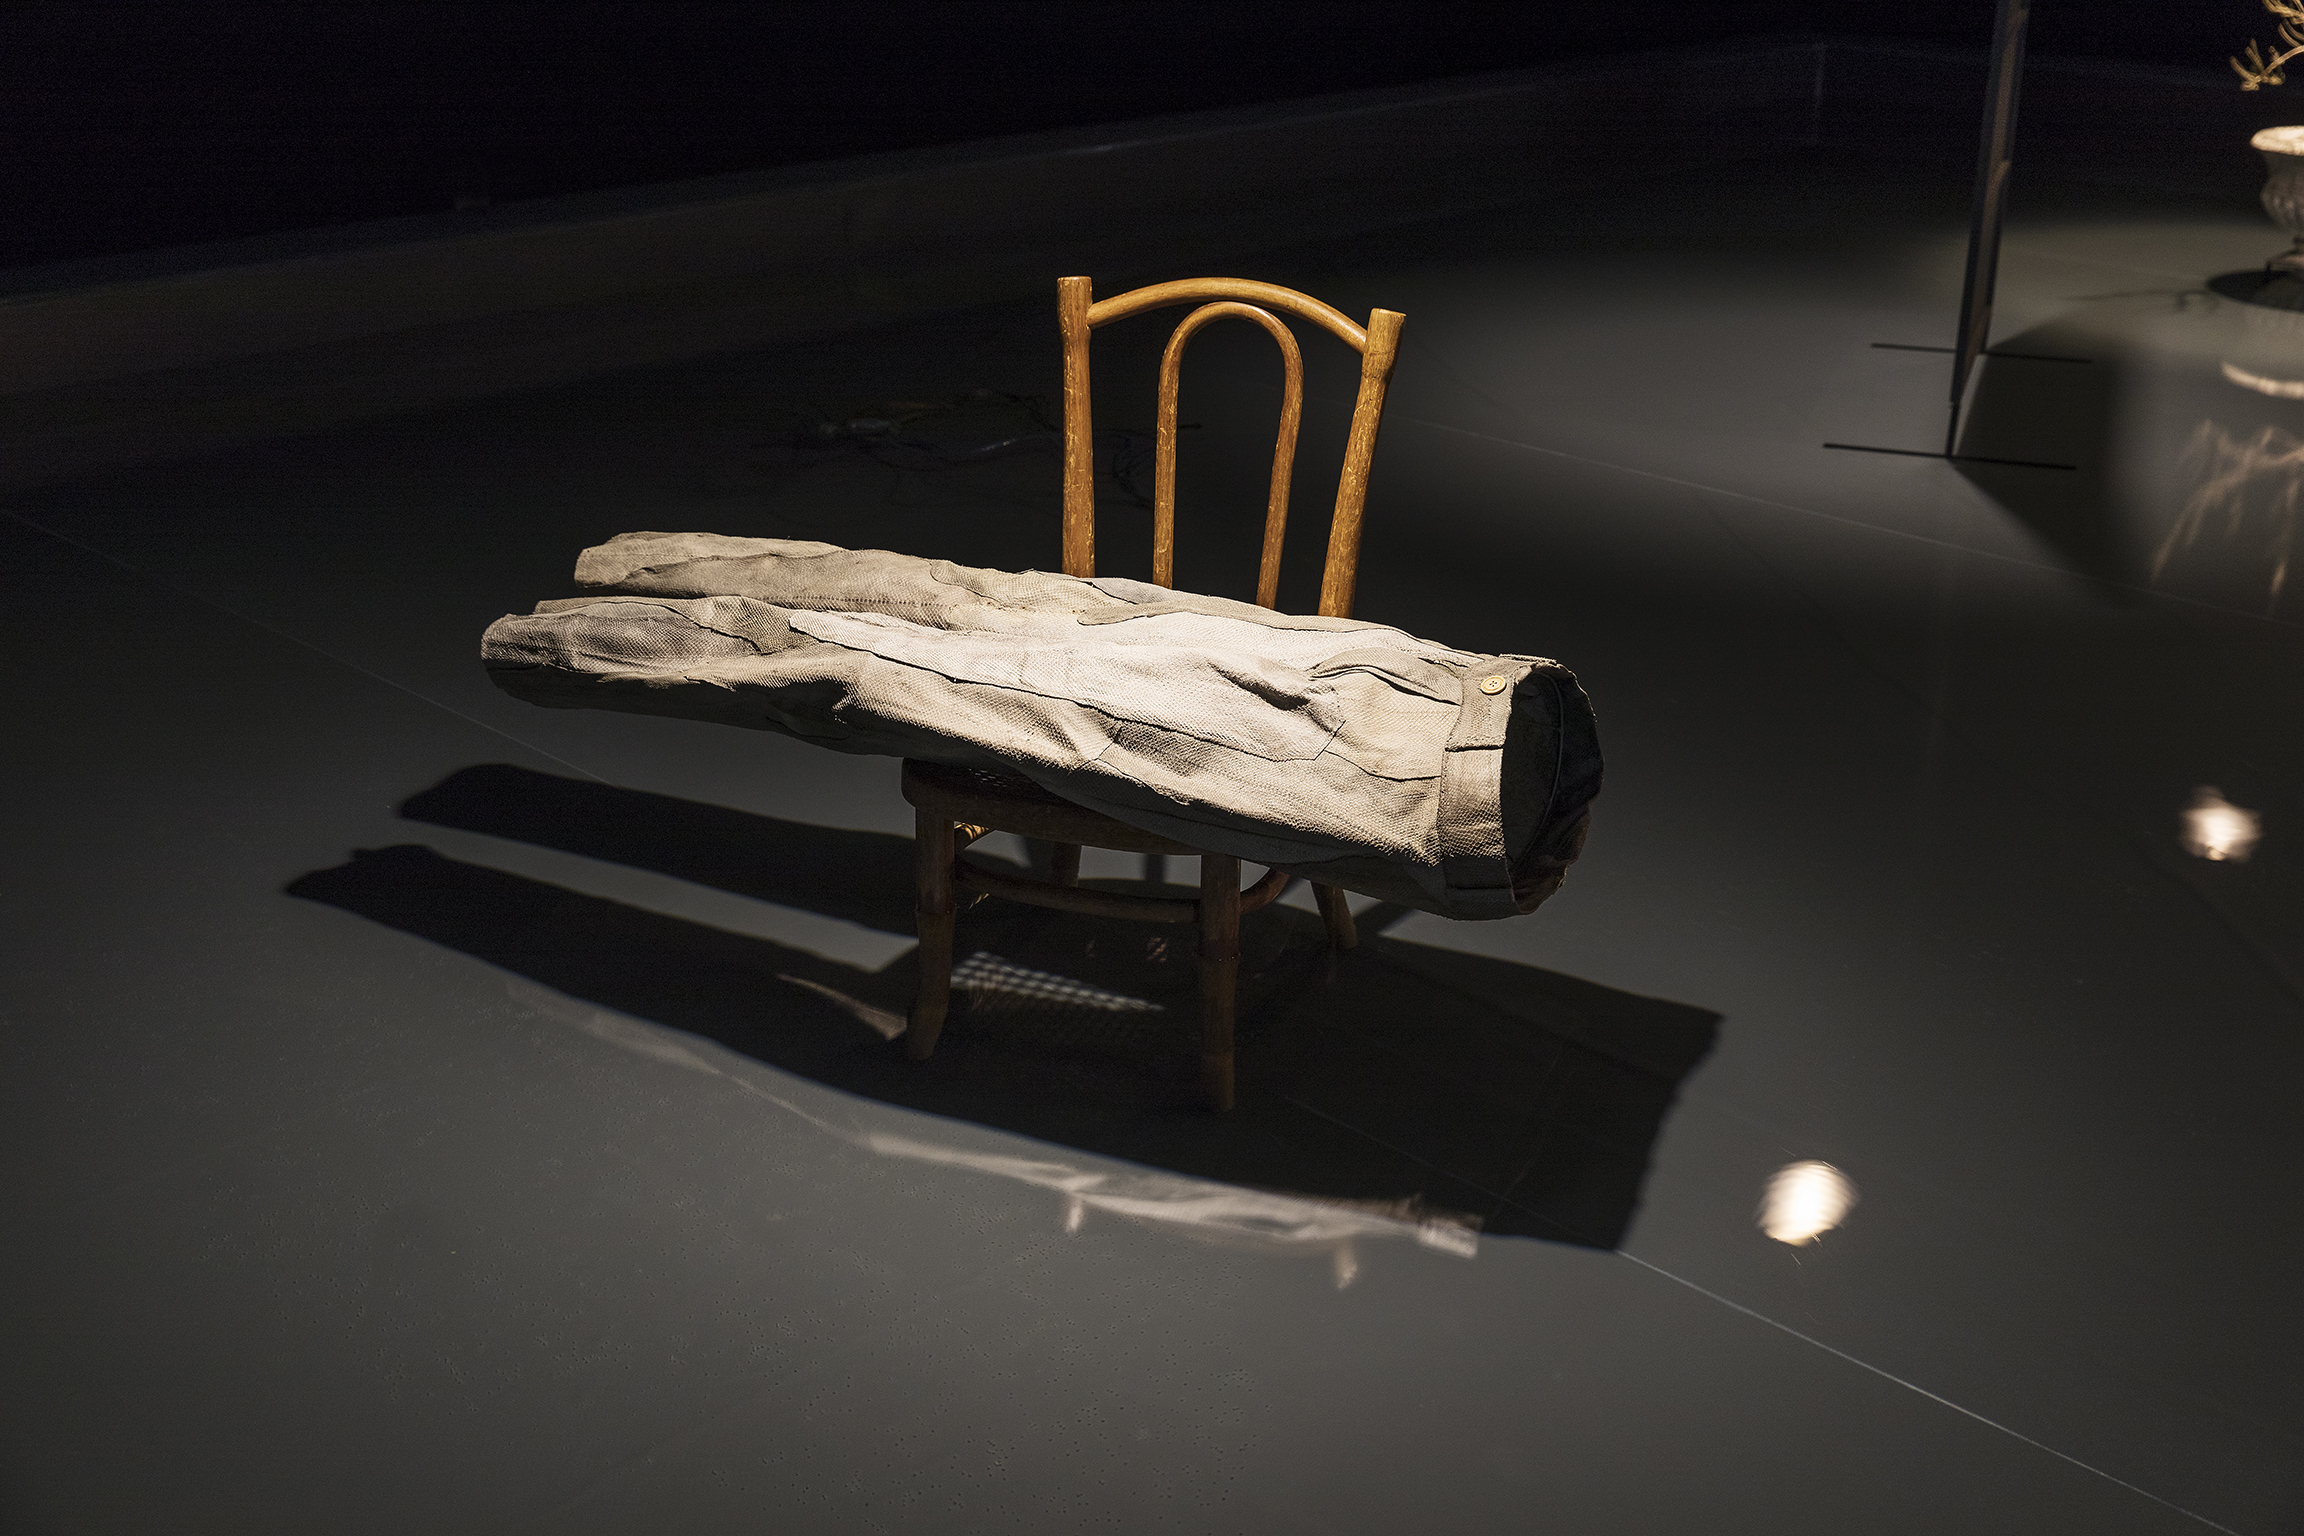 Gareth Moore, Into the Water (In his Leather Breeches), 2008, fish leather, cotton thread, maple buttons, wooden chair, 28 x 35 x 15 in. (71 x 89 x 38 cm). Installation view, A Dark Switch Yawning..., Salzburger Kunstverein, Salzburg, 2017 by